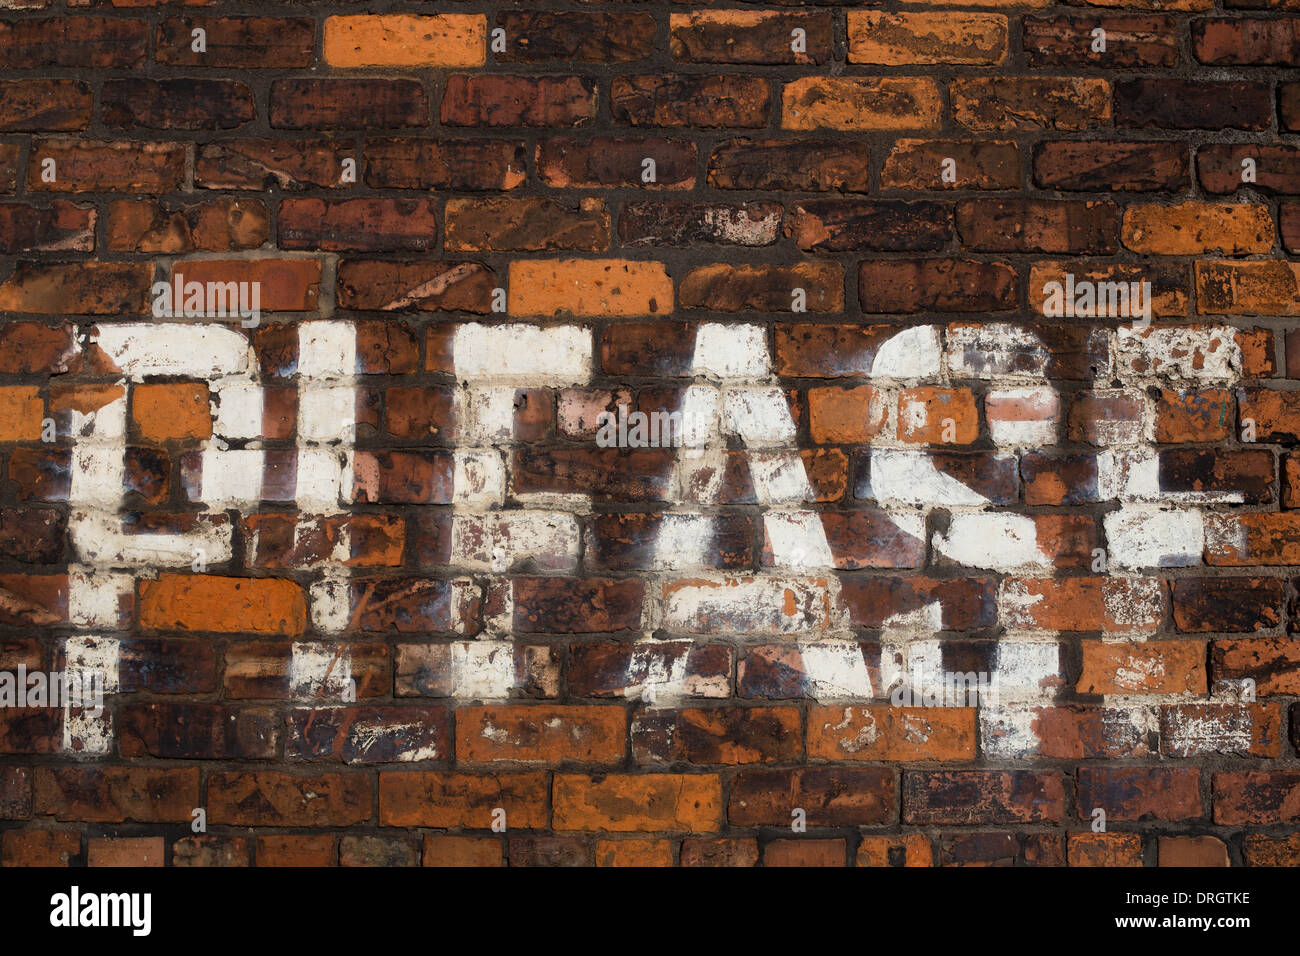 'Please' written on a brick wall with white paint - Stock Image